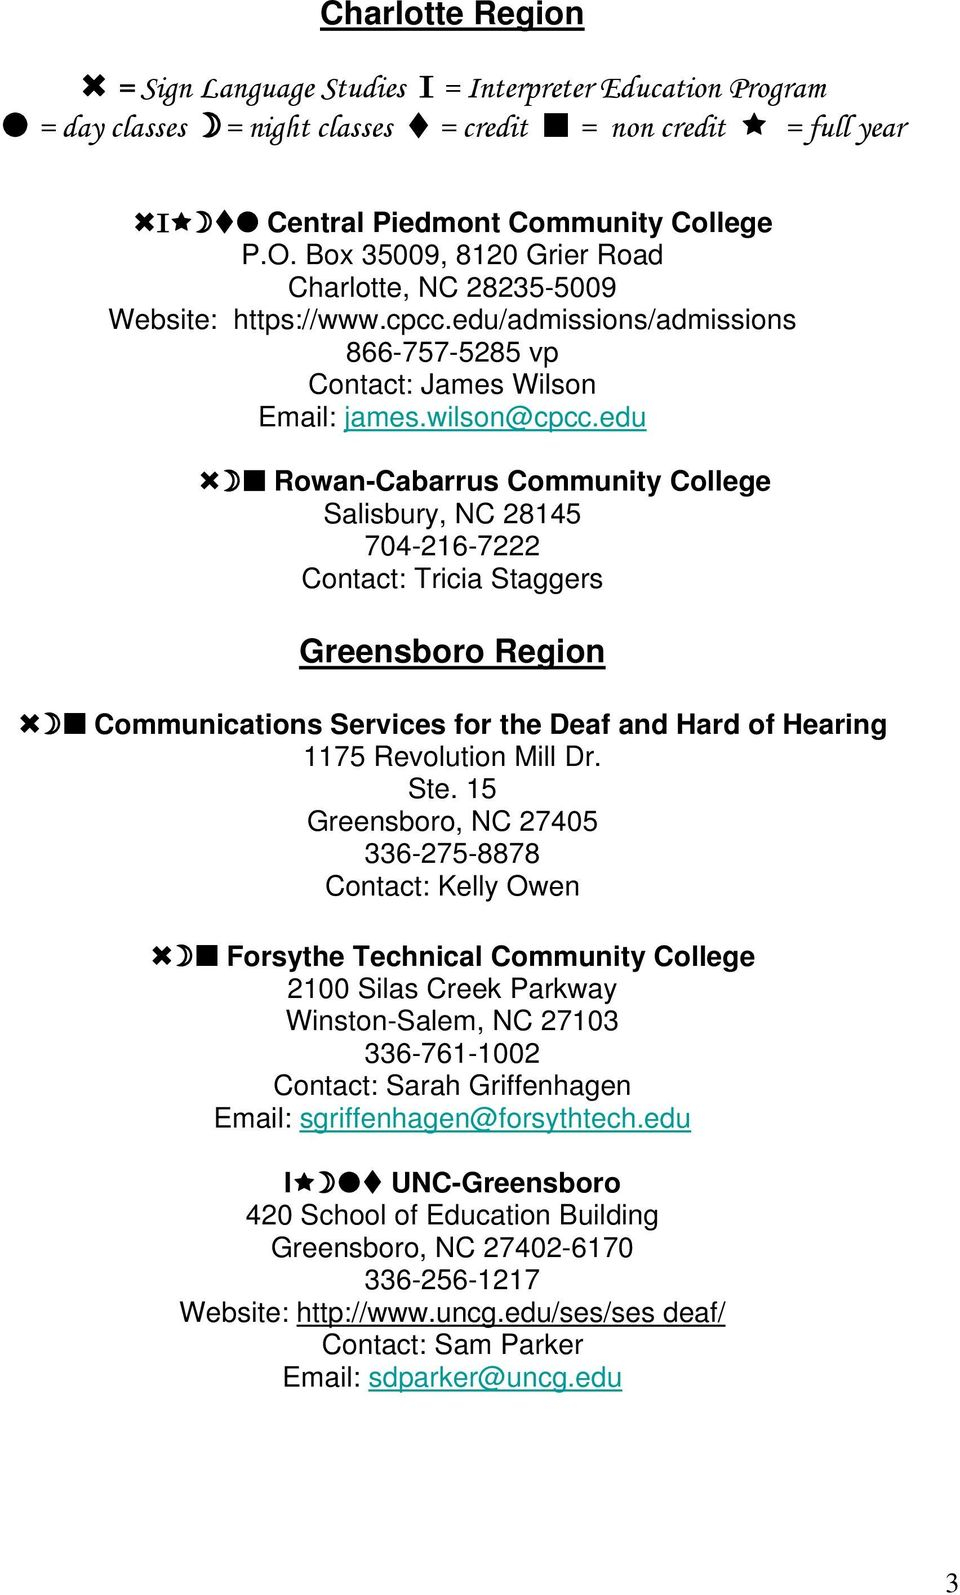 edu Rowan-Cabarrus Community College Salisbury, NC 28145 704-216-7222 Contact: Tricia Staggers Greensboro Region Communications Services for the Deaf and Hard of Hearing 1175 Revolution Mill Dr. Ste.